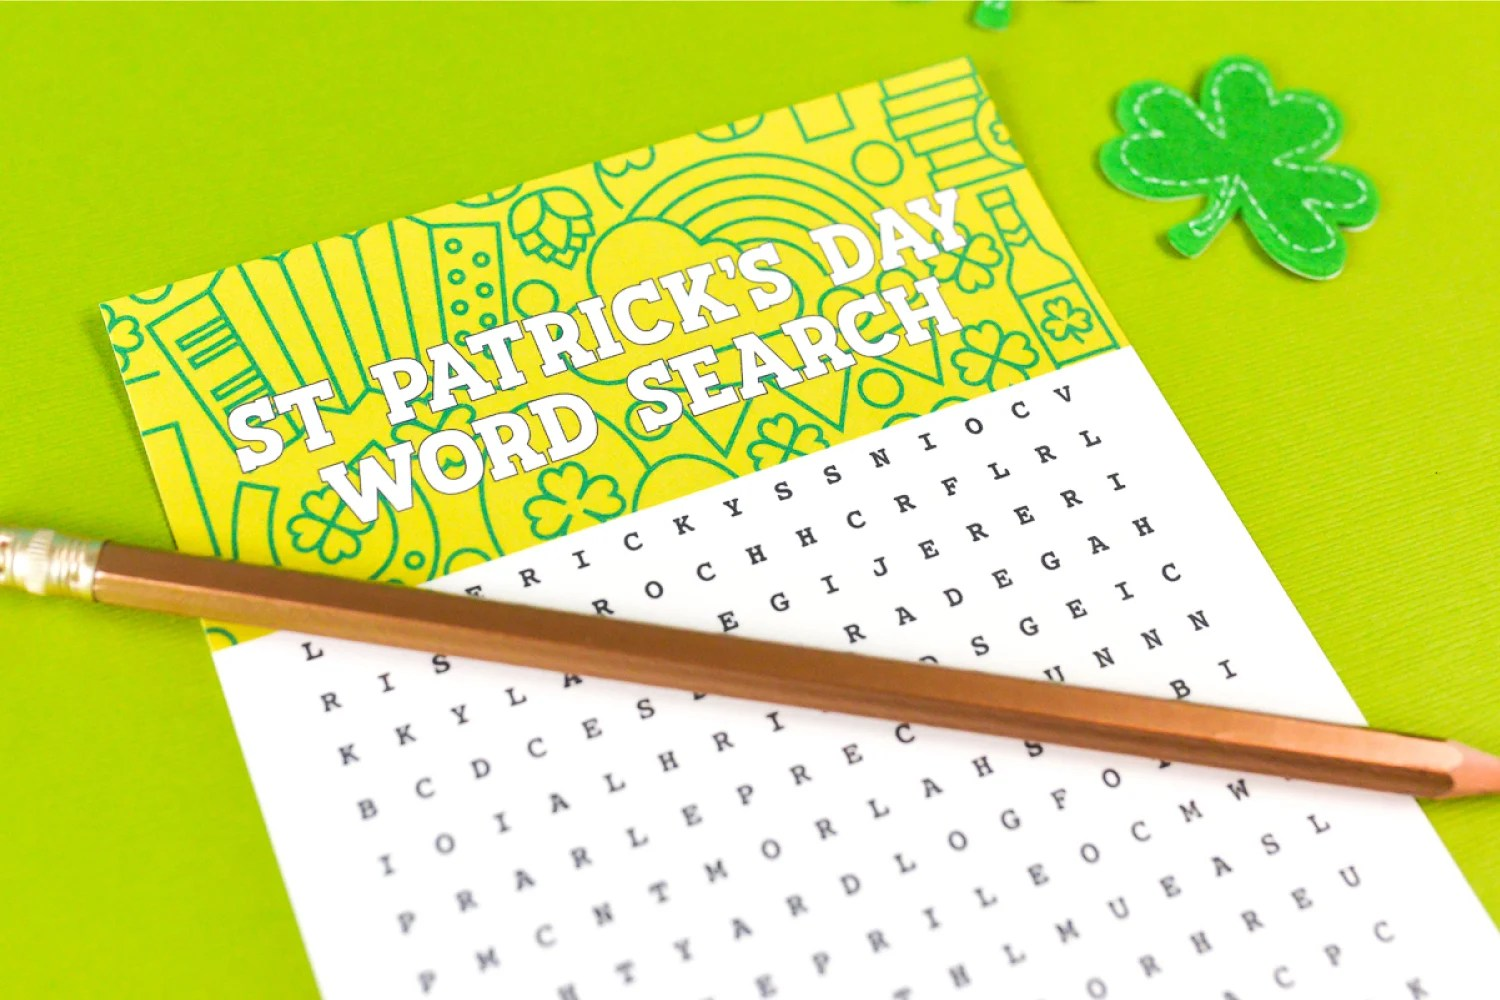 image about St Patrick Word Search Printable identified as Cost-free Printable St. Patricks Working day Phrase Glance - Hey, Will allow